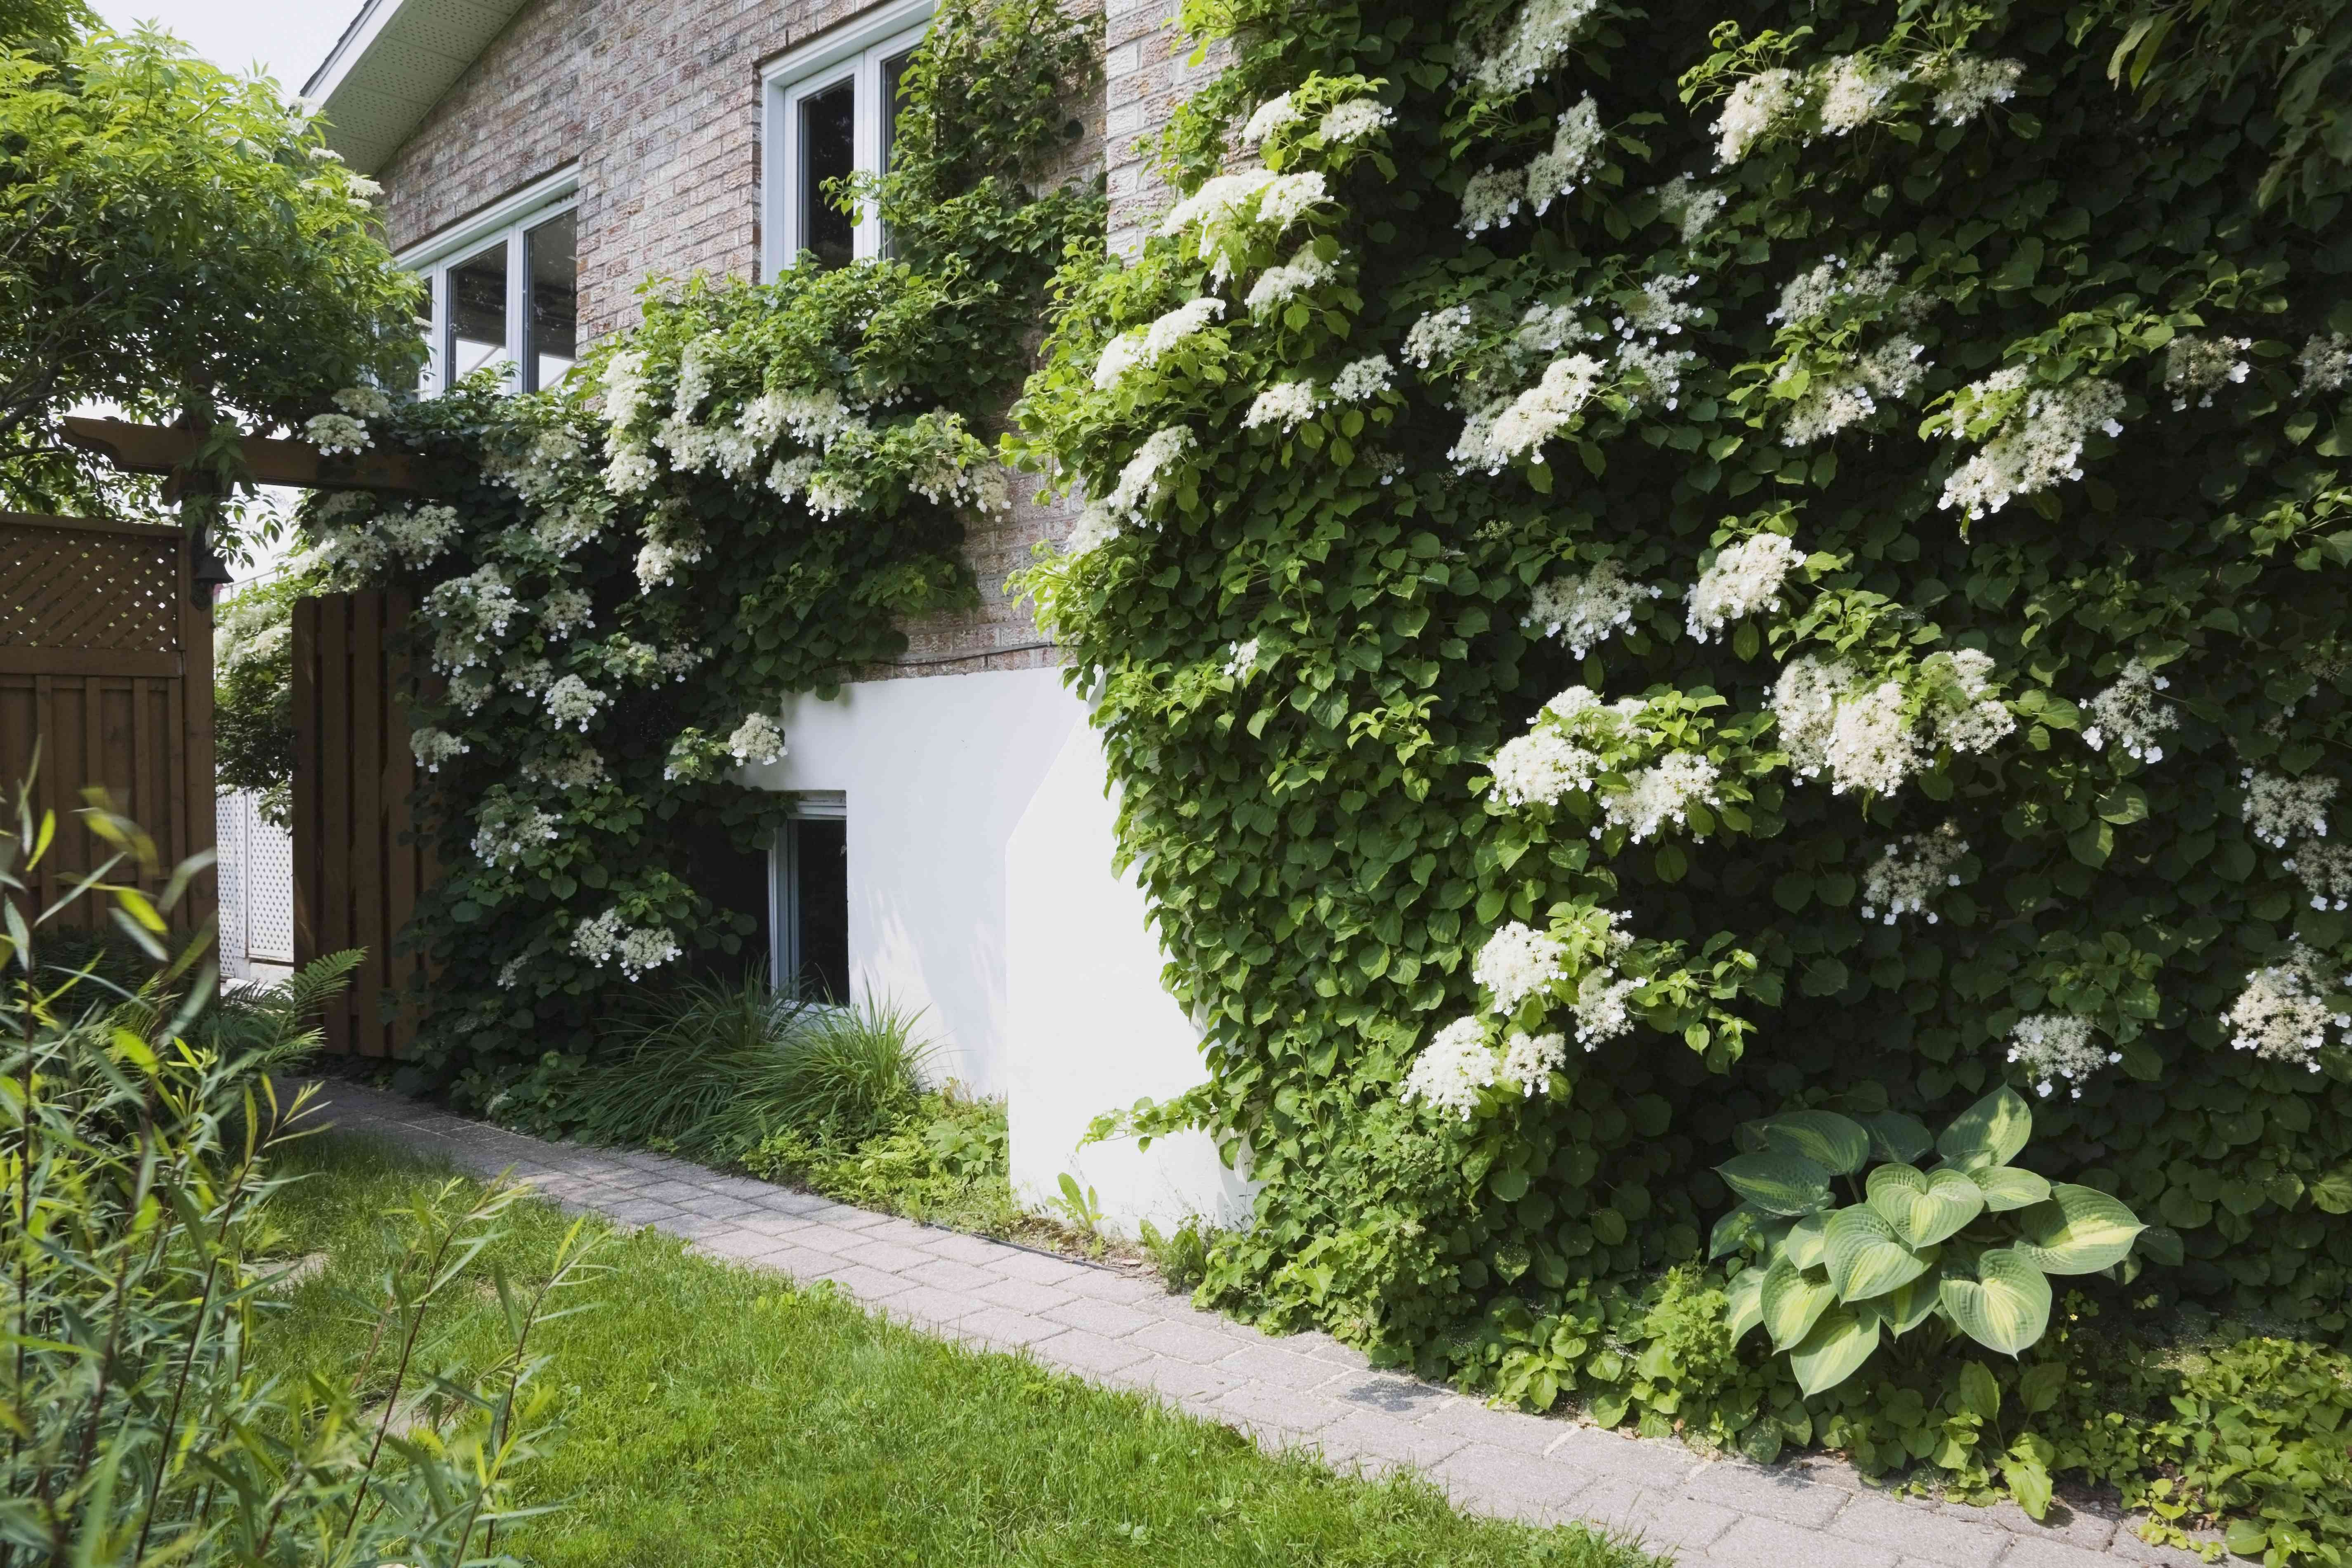 Climbing hydrangea on the side of a home with white flowers